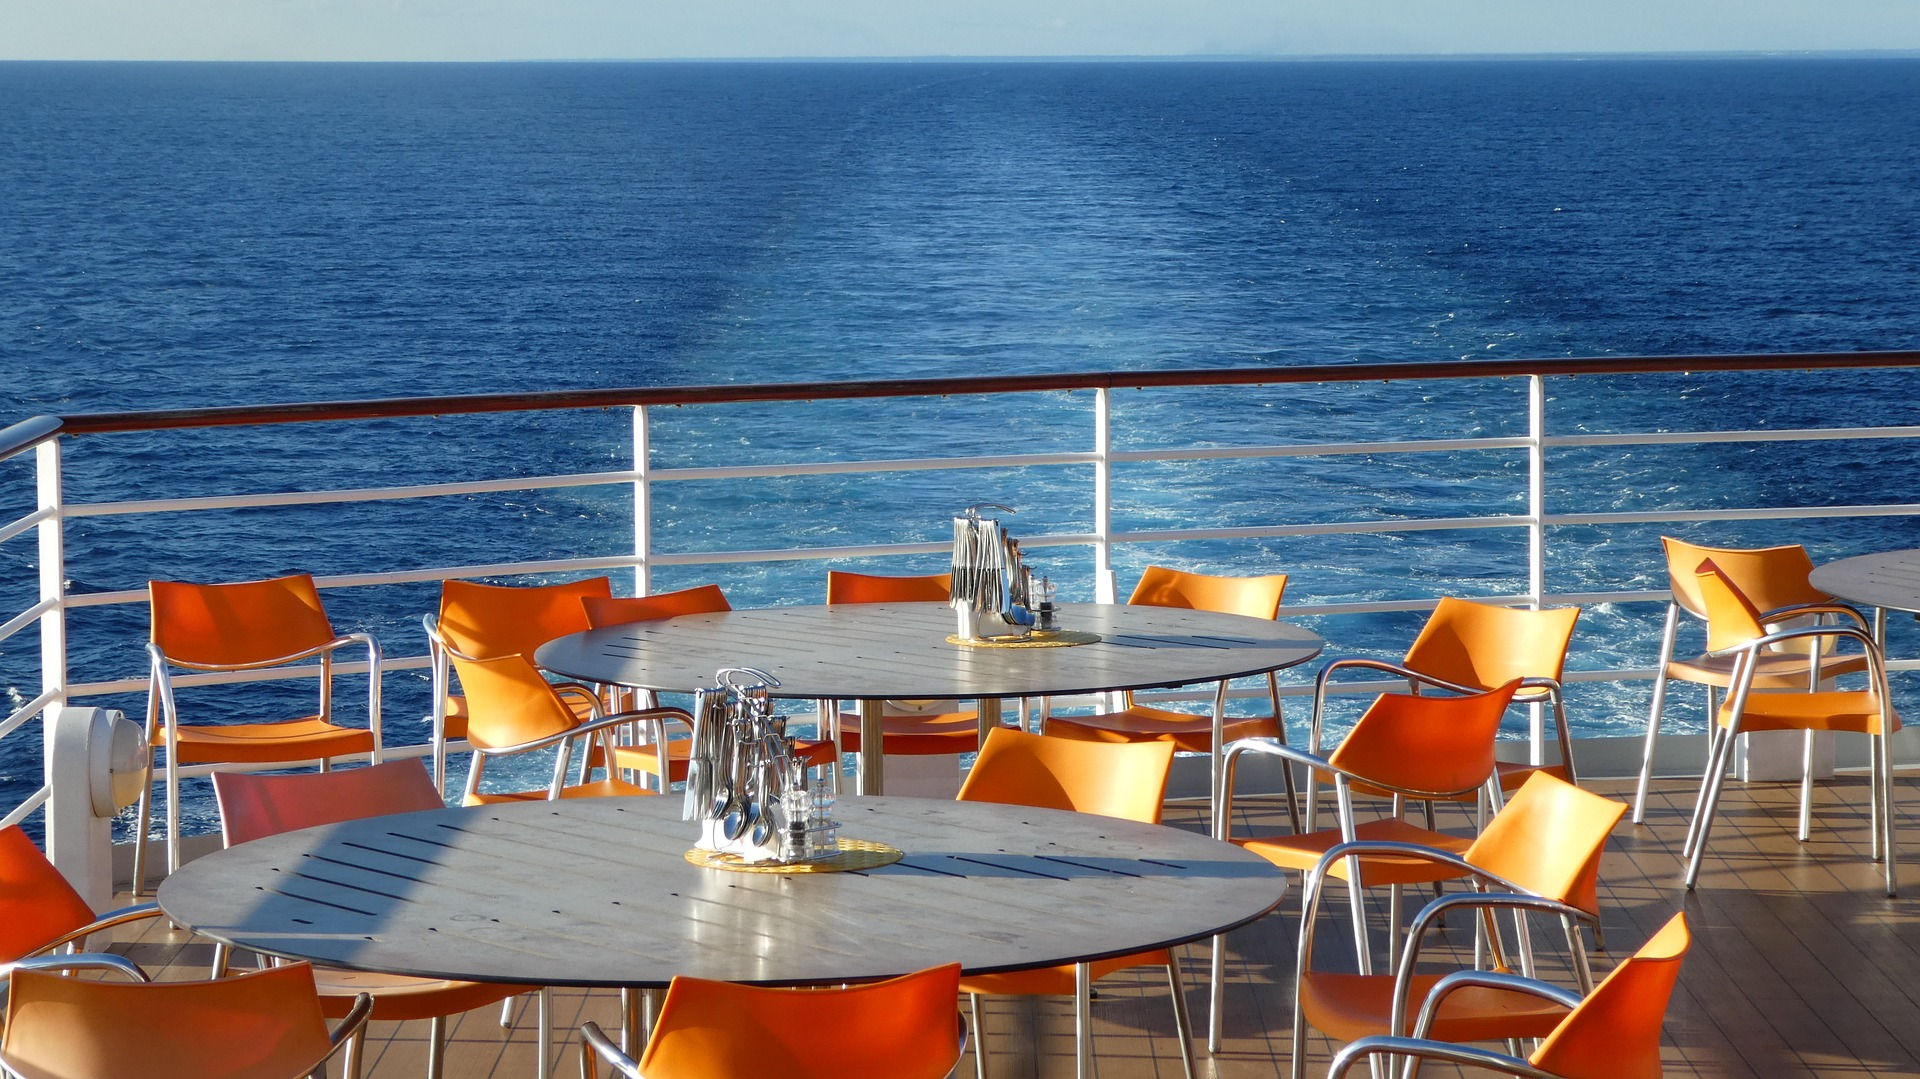 Tips for Planning a Cruise